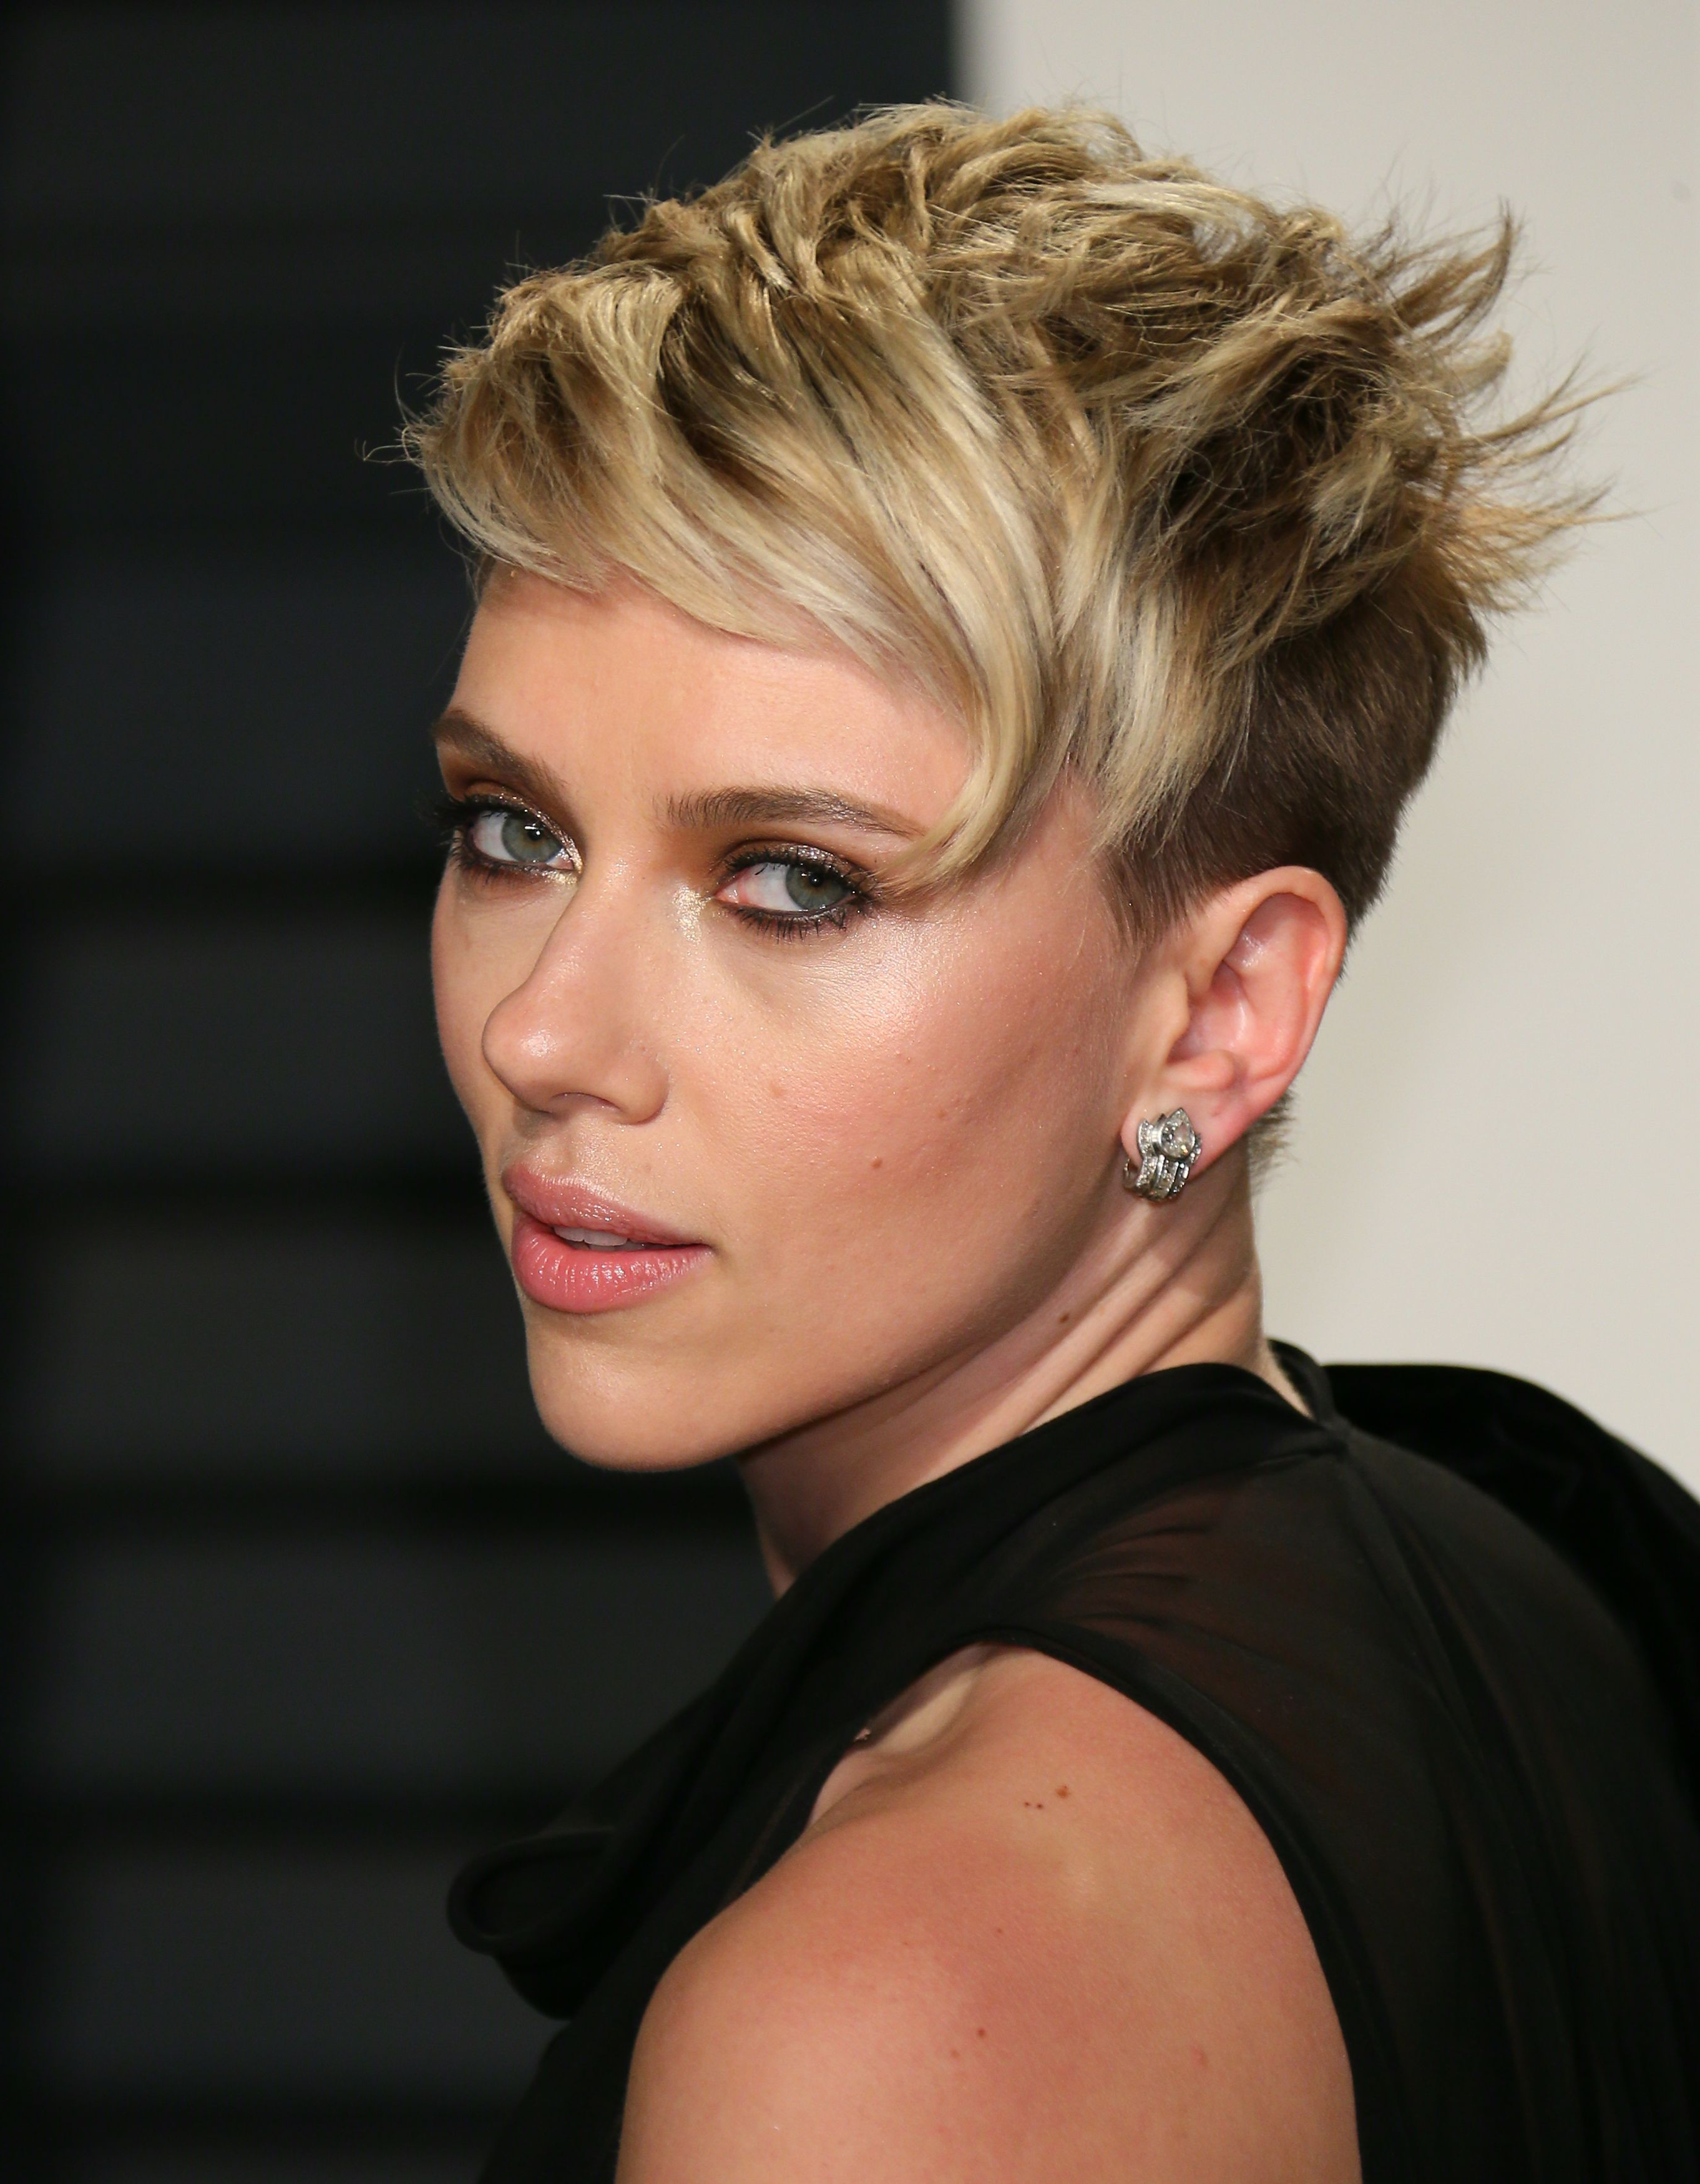 65 Best Short Hairstyles, Haircuts, And Short Hair Ideas For 2018 Throughout Short Haircuts For Celebrities (Gallery 22 of 25)